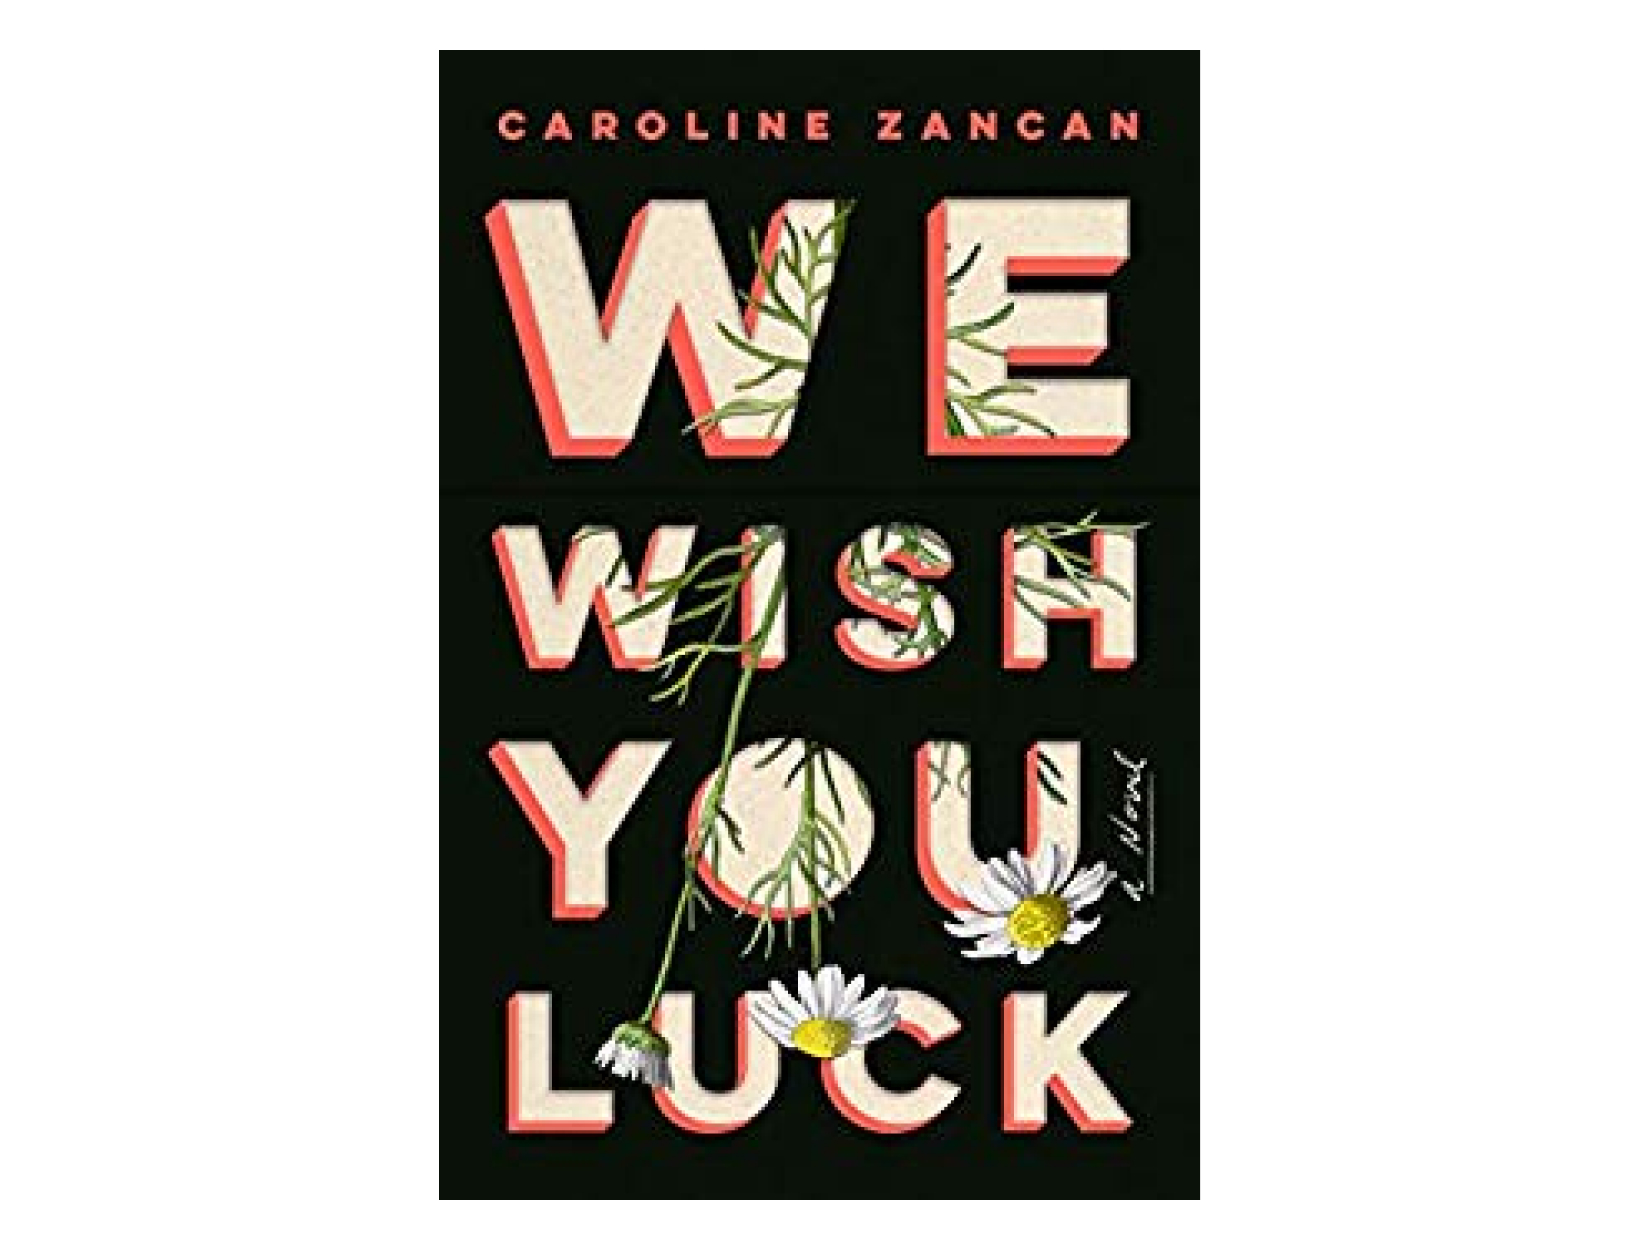 <em>We Wish You Luck</em> by Caroline Zancan